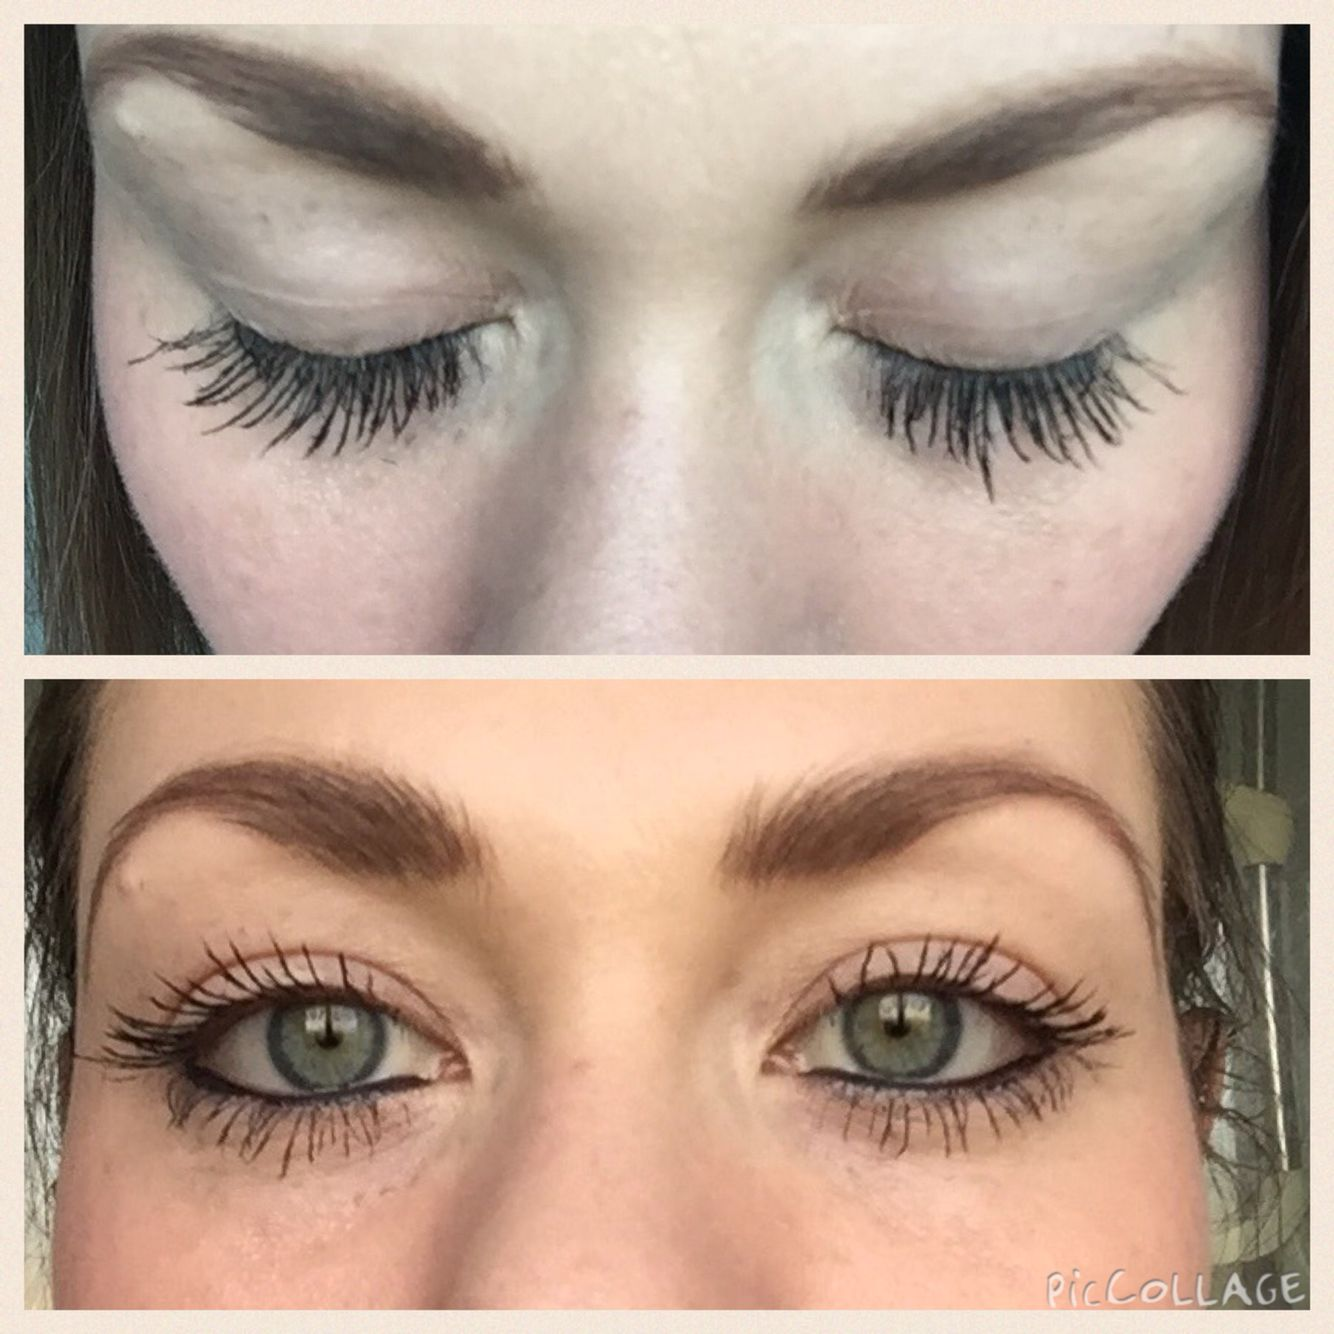 #lovemylashes